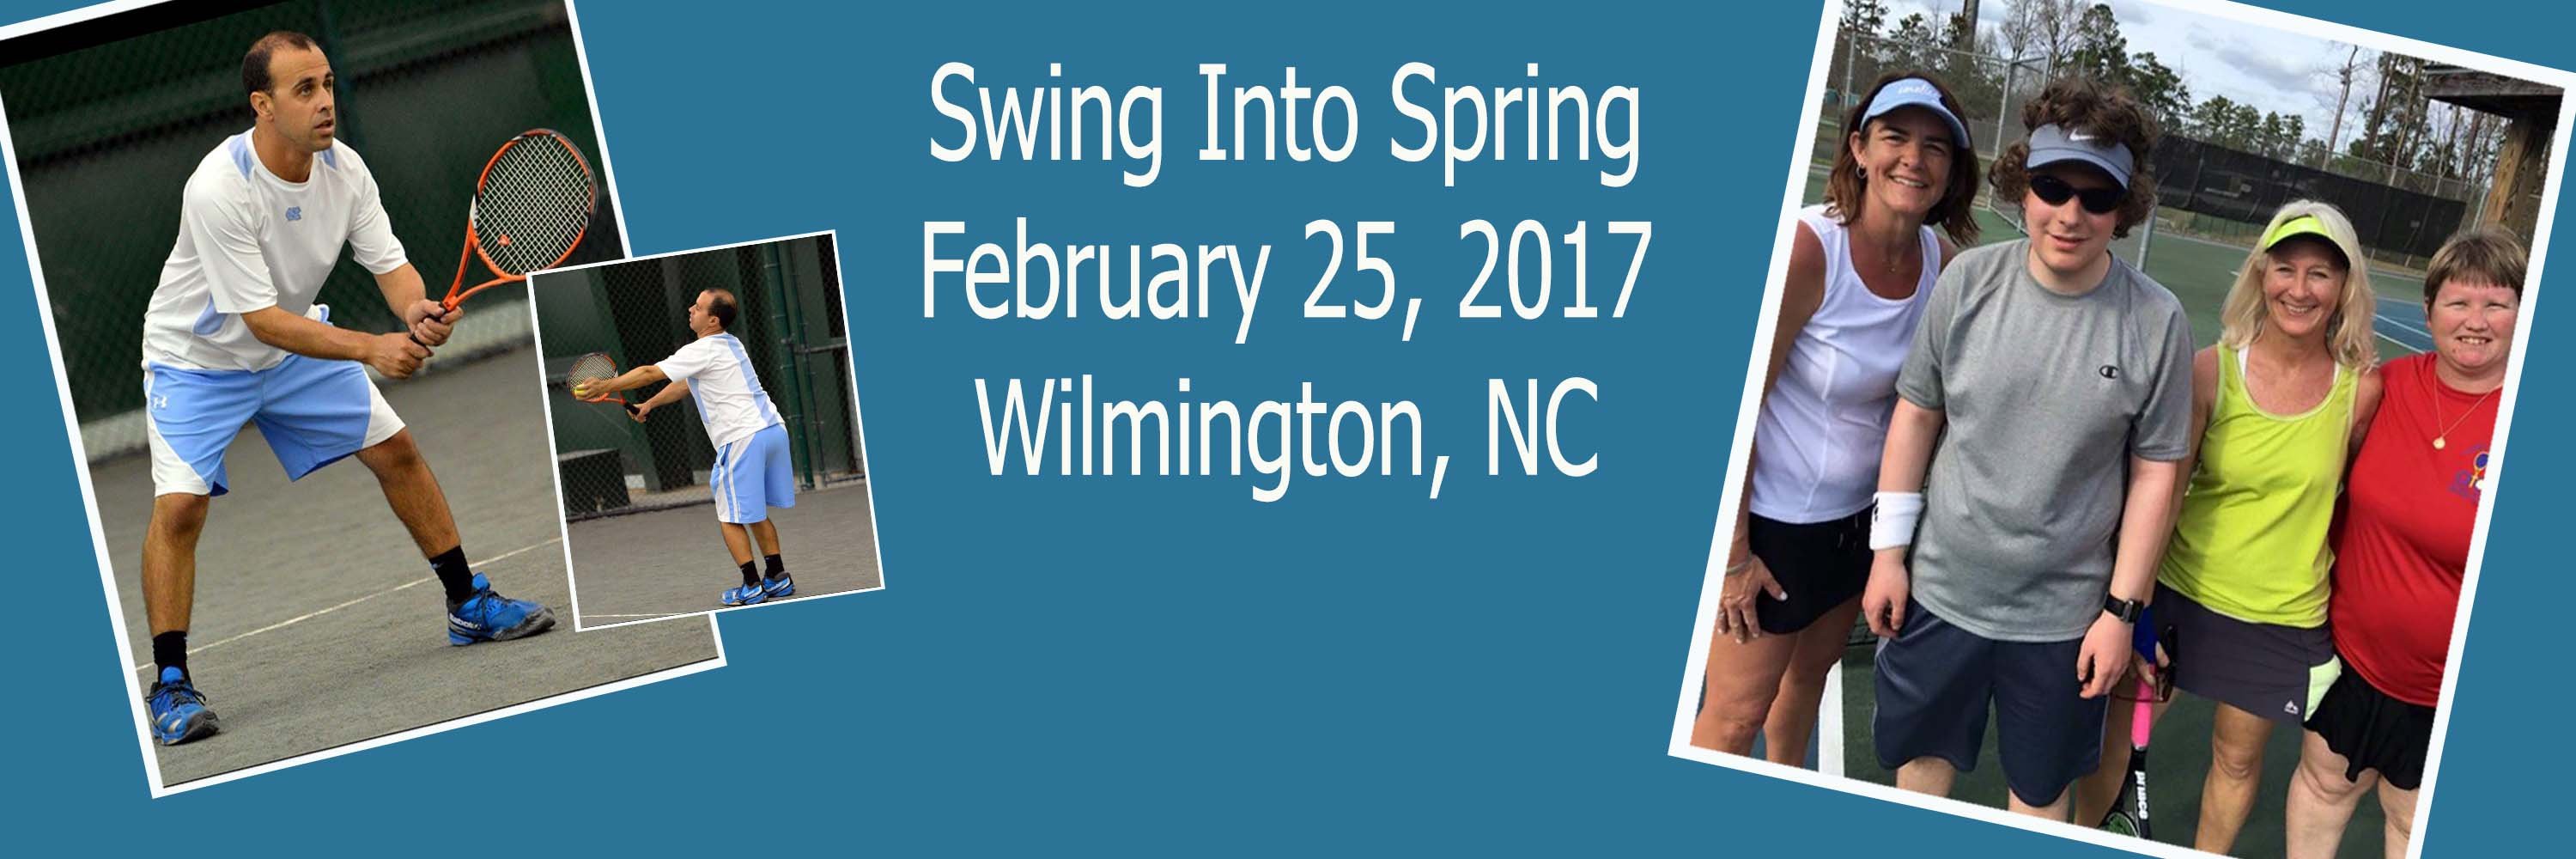 Swing into Spring 2017